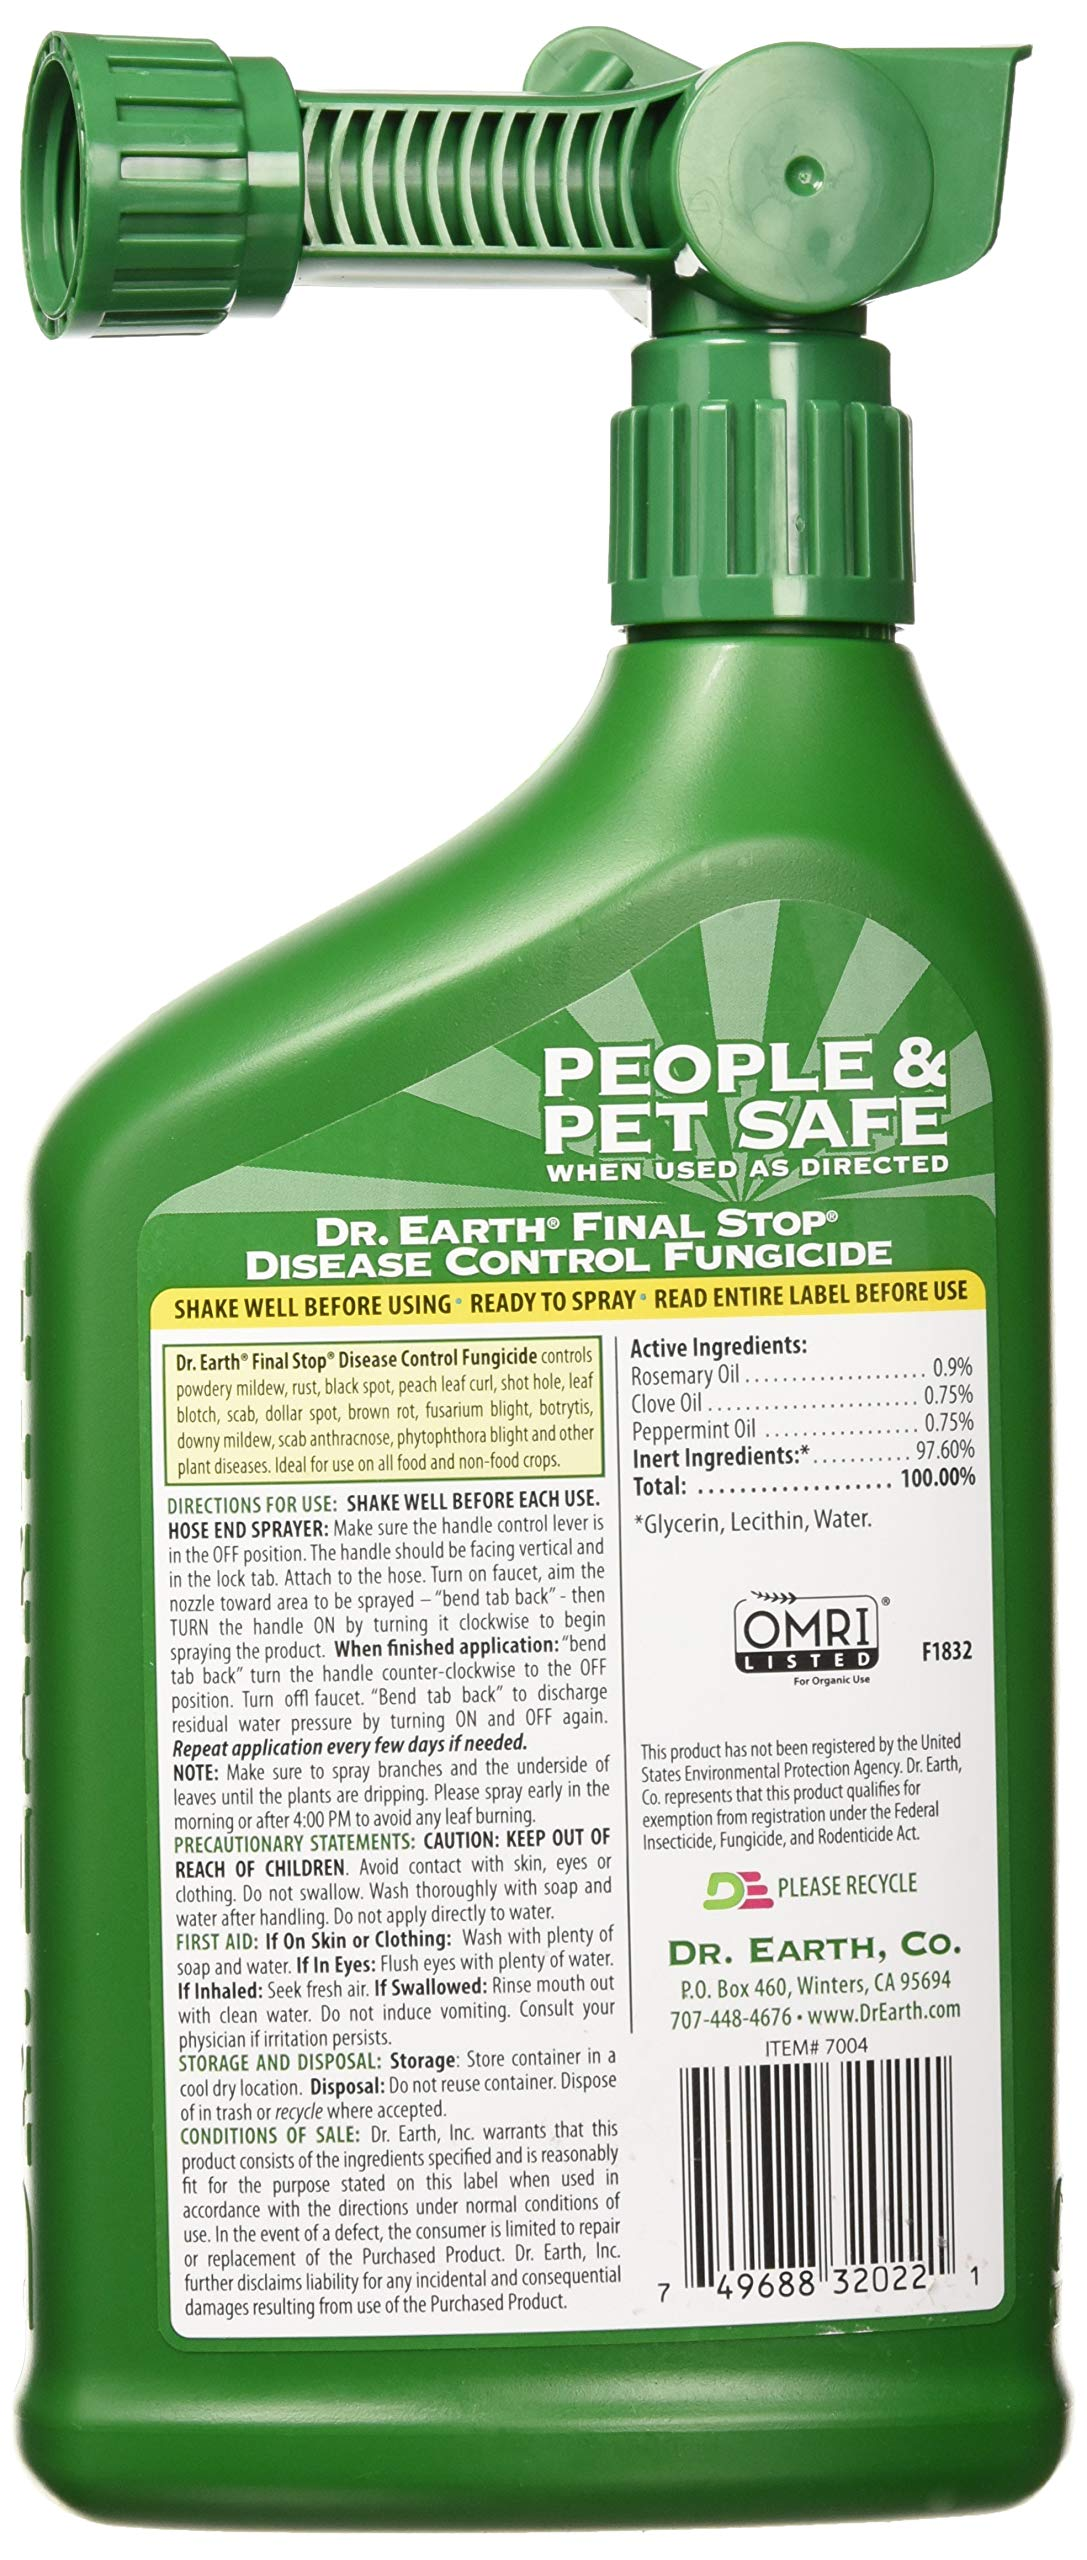 Dr. Earth 7004 Concentrate 3 Controls Organic Fungicide Hose End, 32-Ounce by Dr. Earth (Image #2)